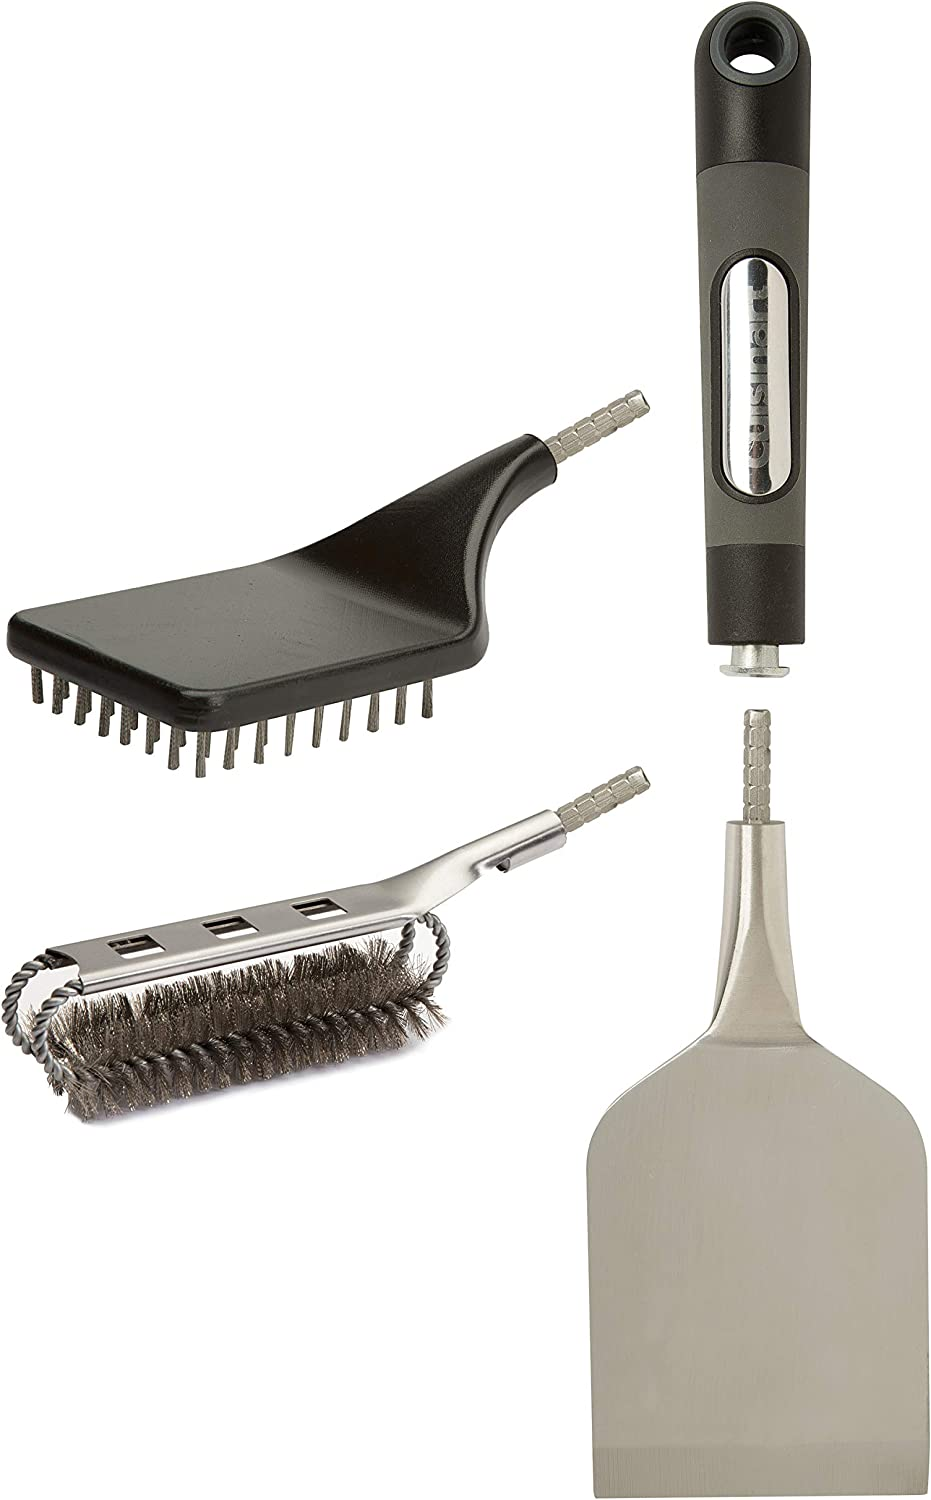 Cuisinart CGWM-058 Multi-Use Cleaning System 3-Piece Grill Brush